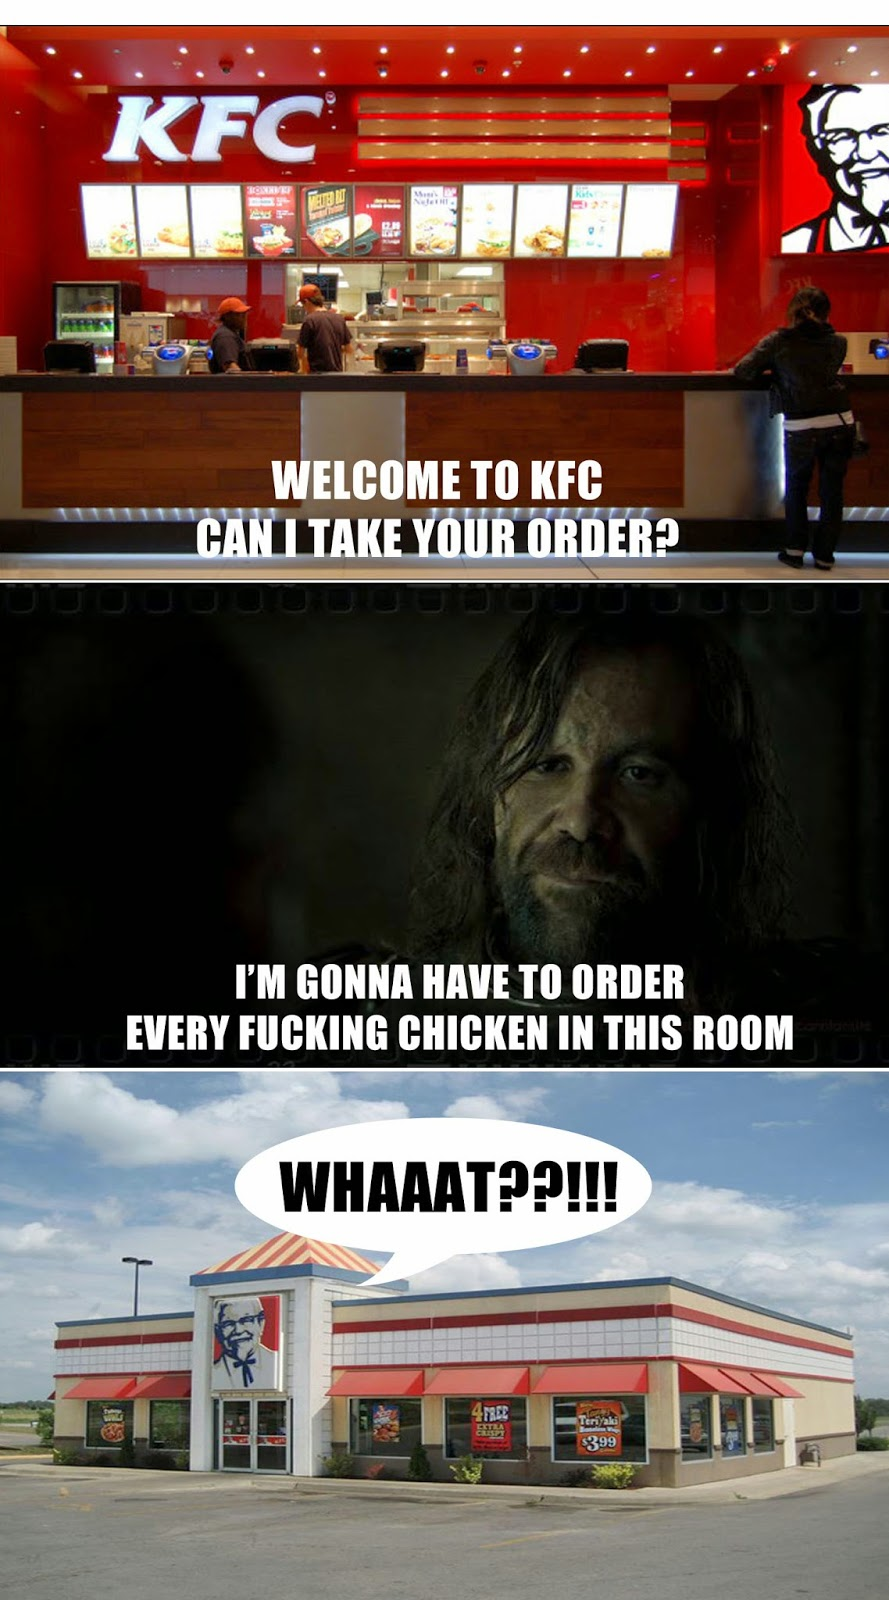 KFC Game Of Thrones Meme | Every Fucking Chicken In The Room #Season4